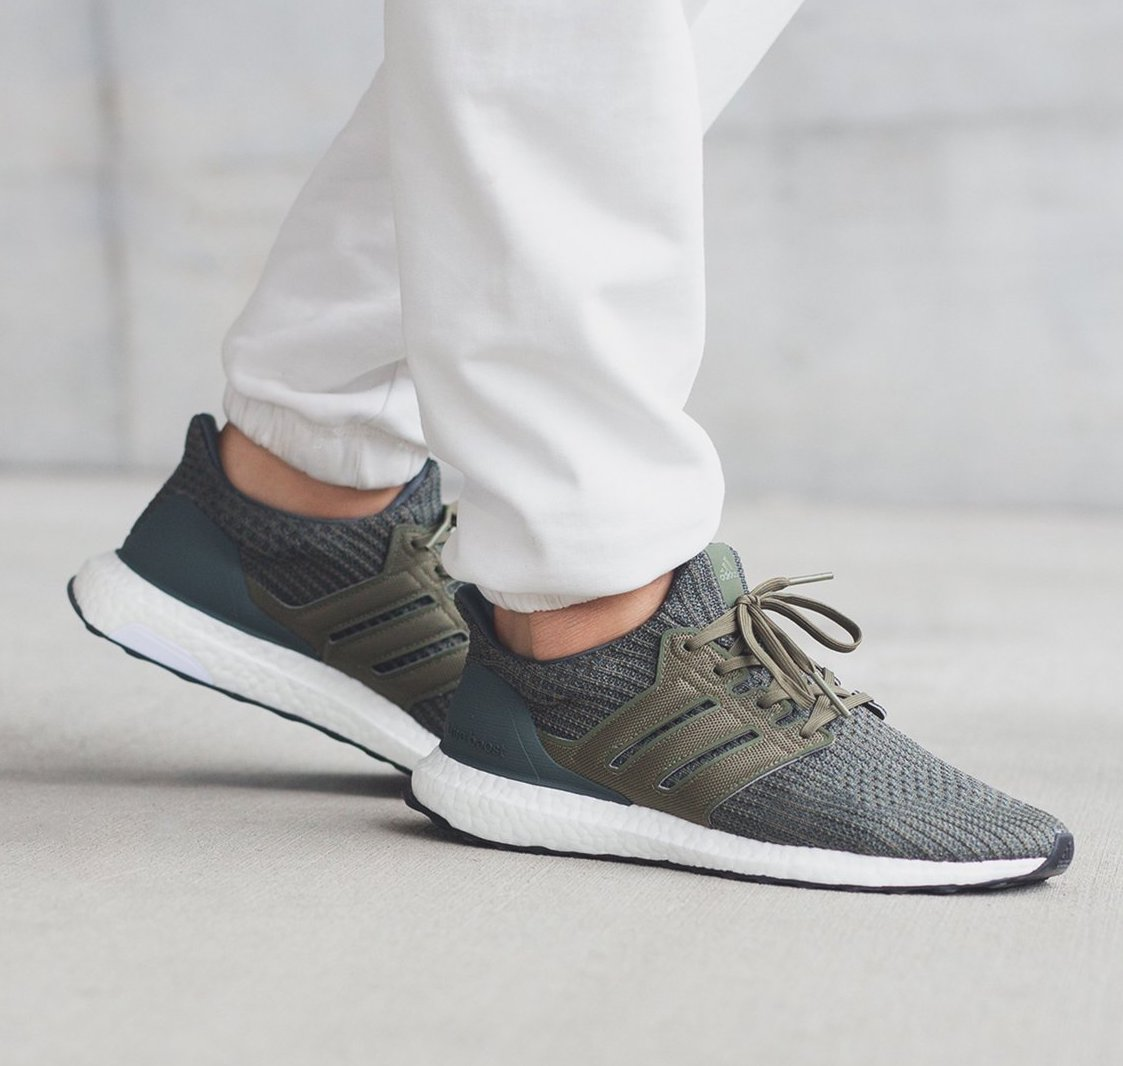 Ub4.0 The Big Four City Limited Adidas Ultra Boost 4.0 Beijing